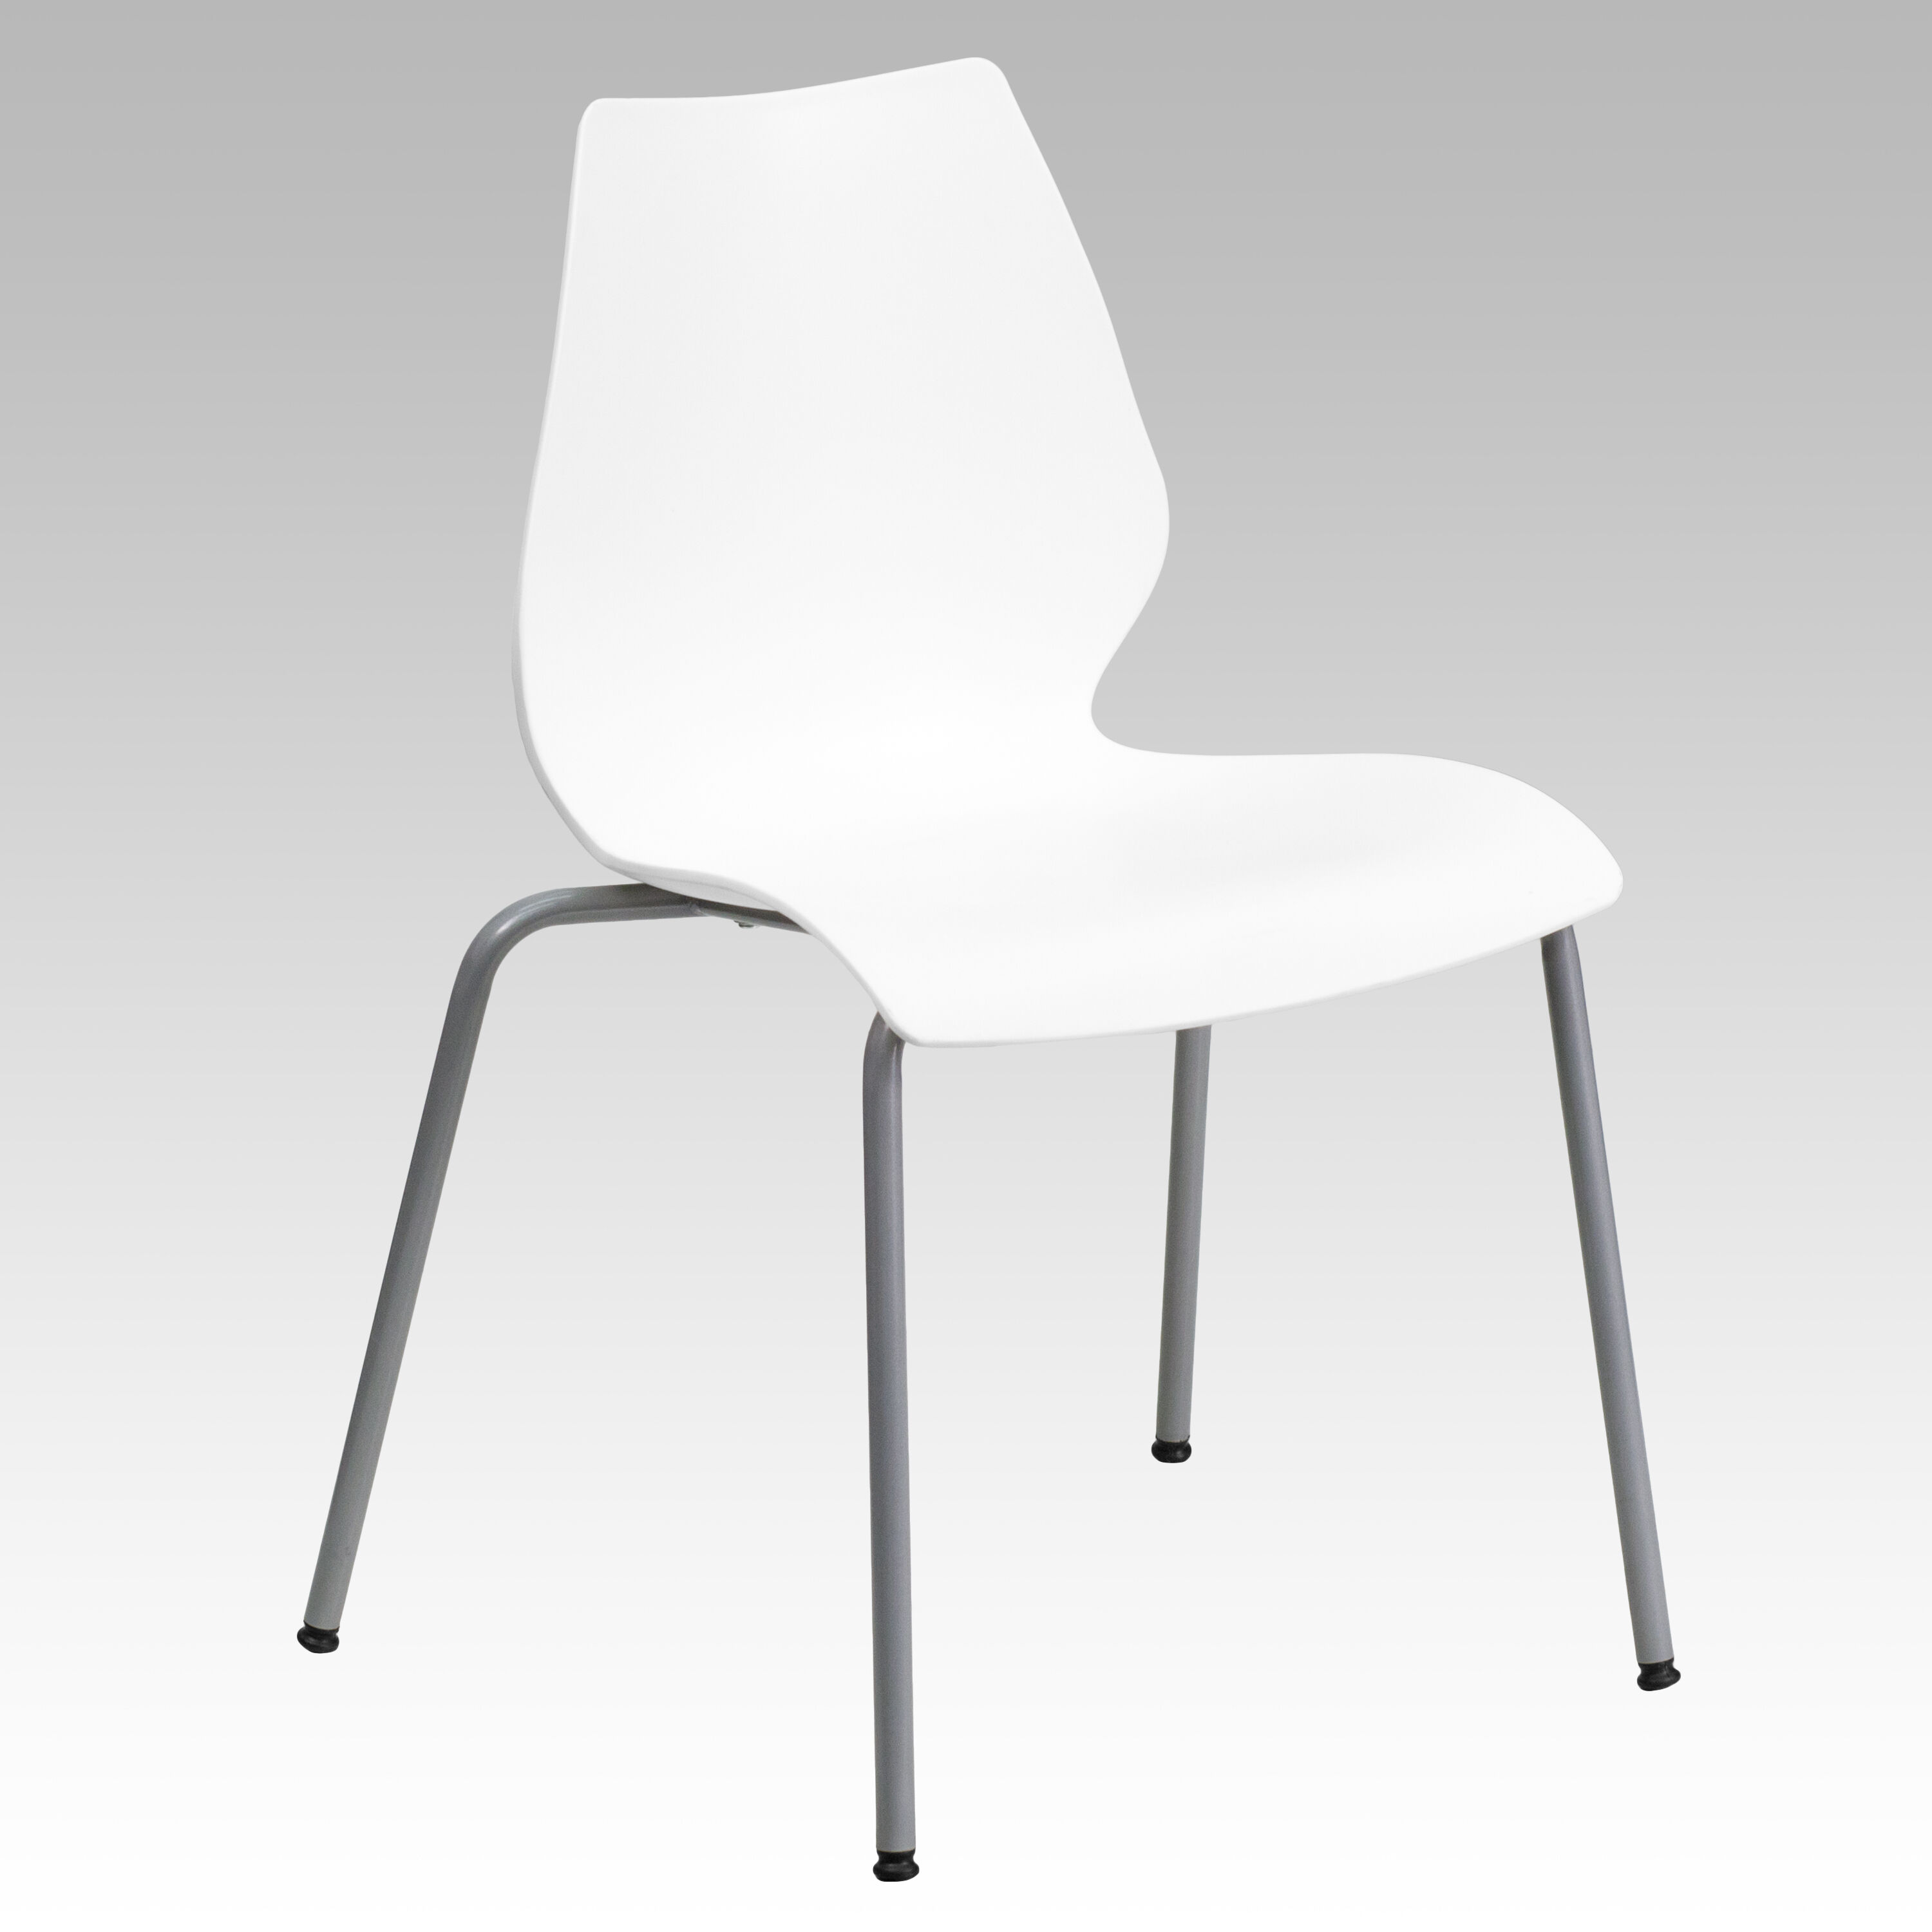 Capacity White Stack Chair With Lumbar Support And Silver Frame